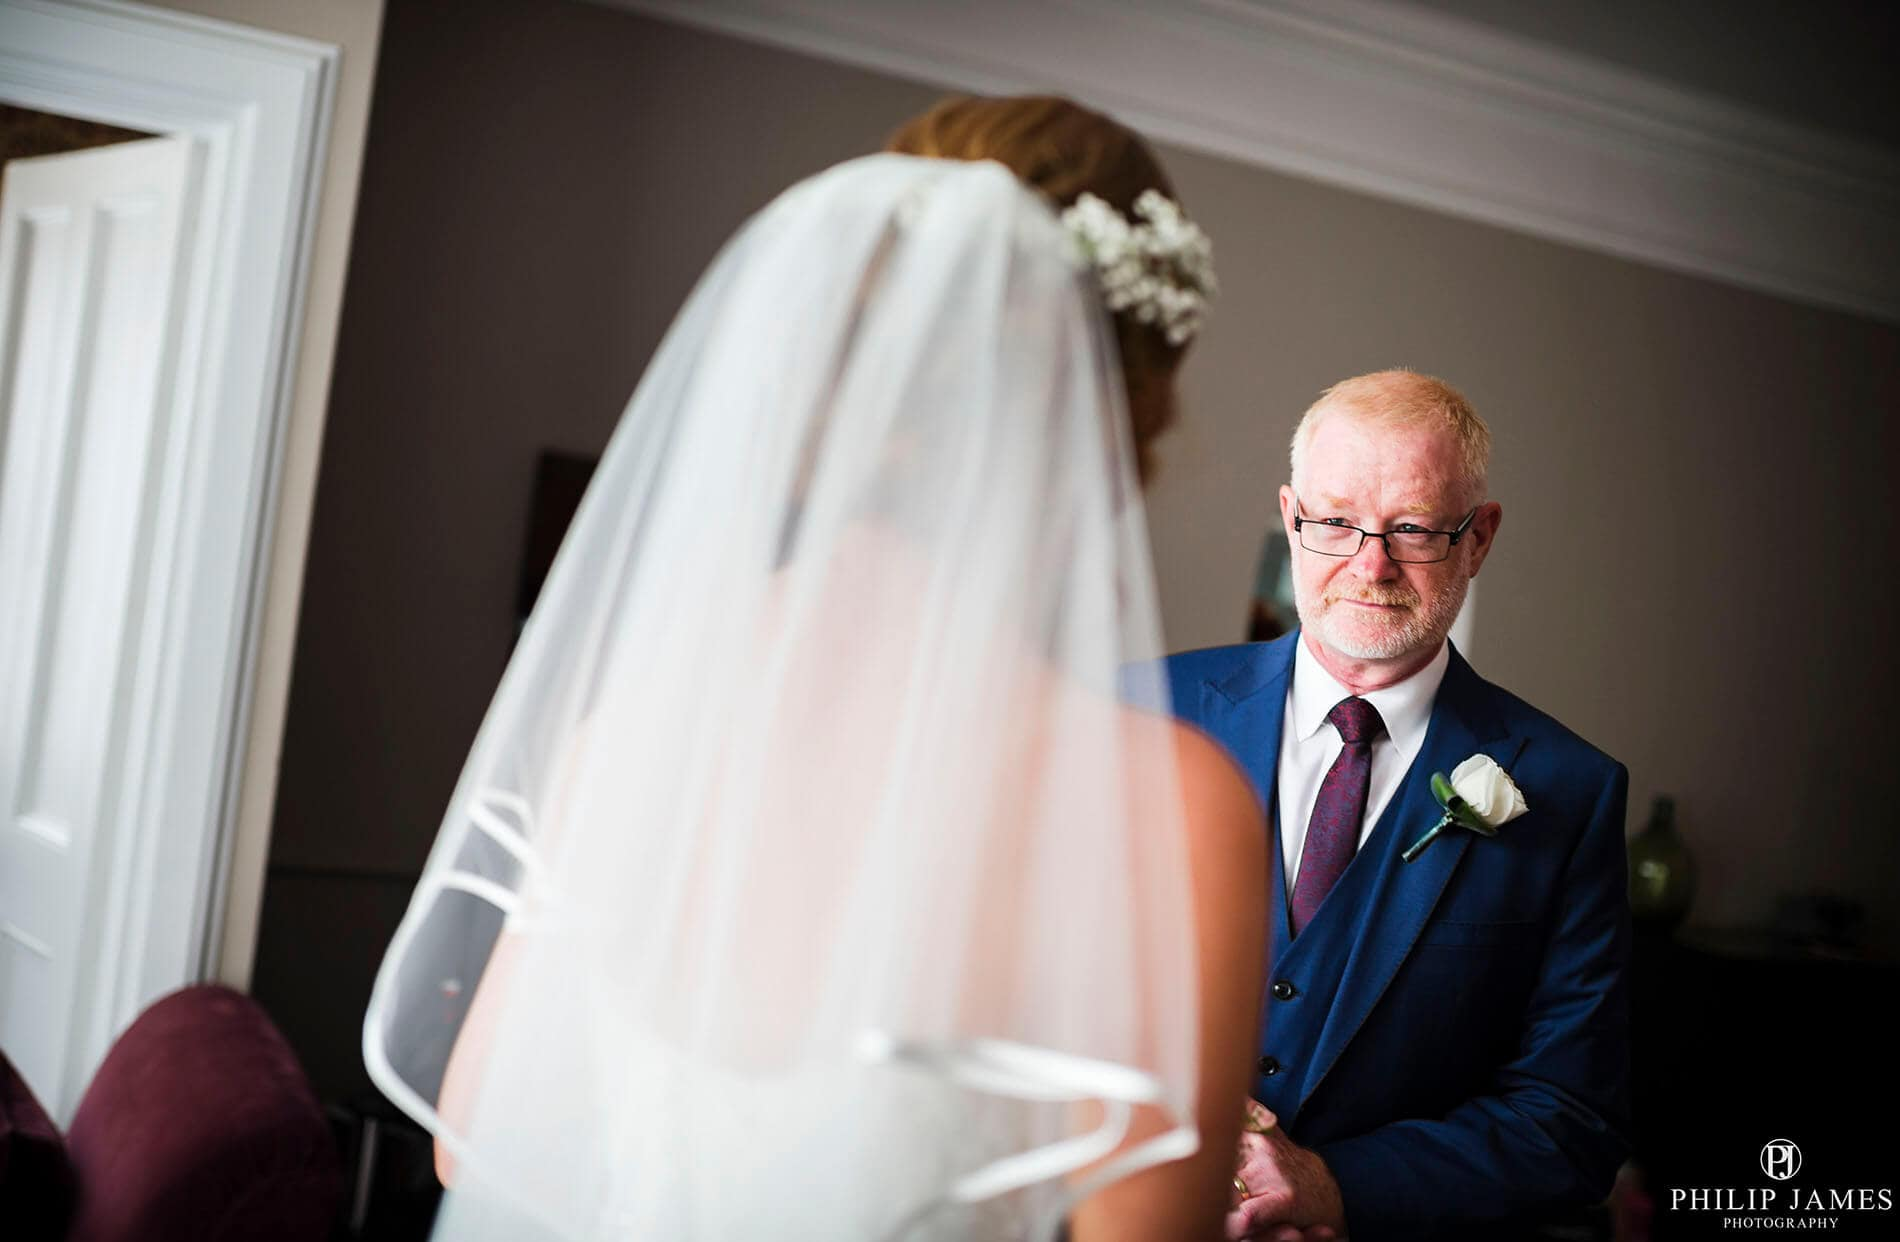 Hampton Manor Wedding Photographer - Philip James covers Birmingham, The West Midlands, Warwickshire and all over the UK. Wedding photography Birmingham is my passion